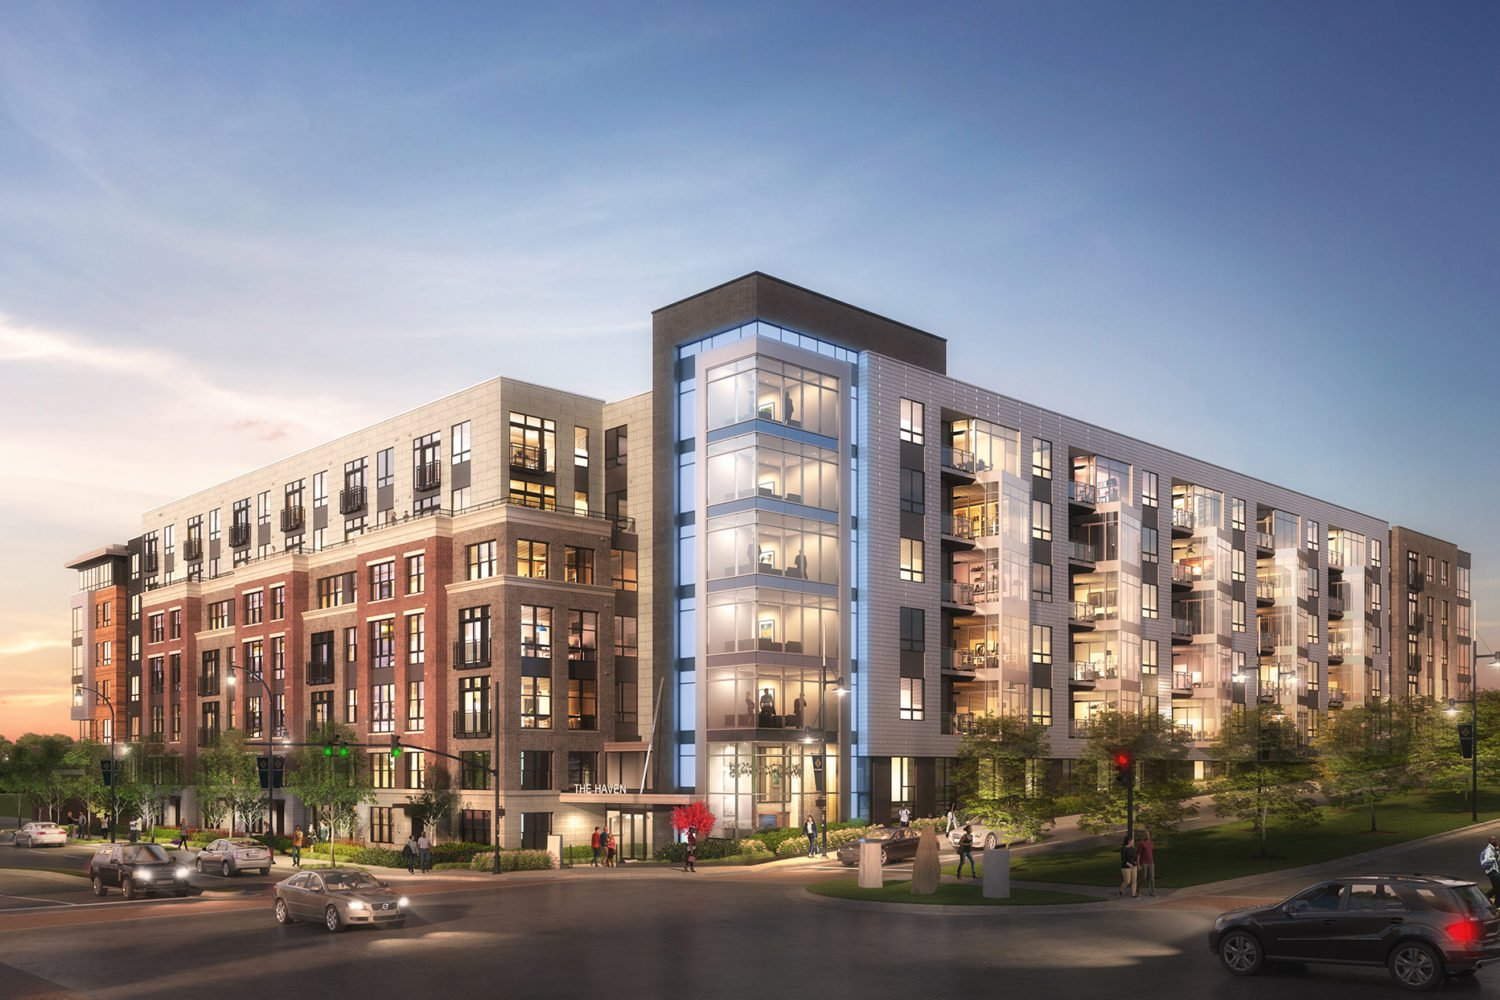 The Haven Offers Luxury Condominium Living in the Heart of National Harbor